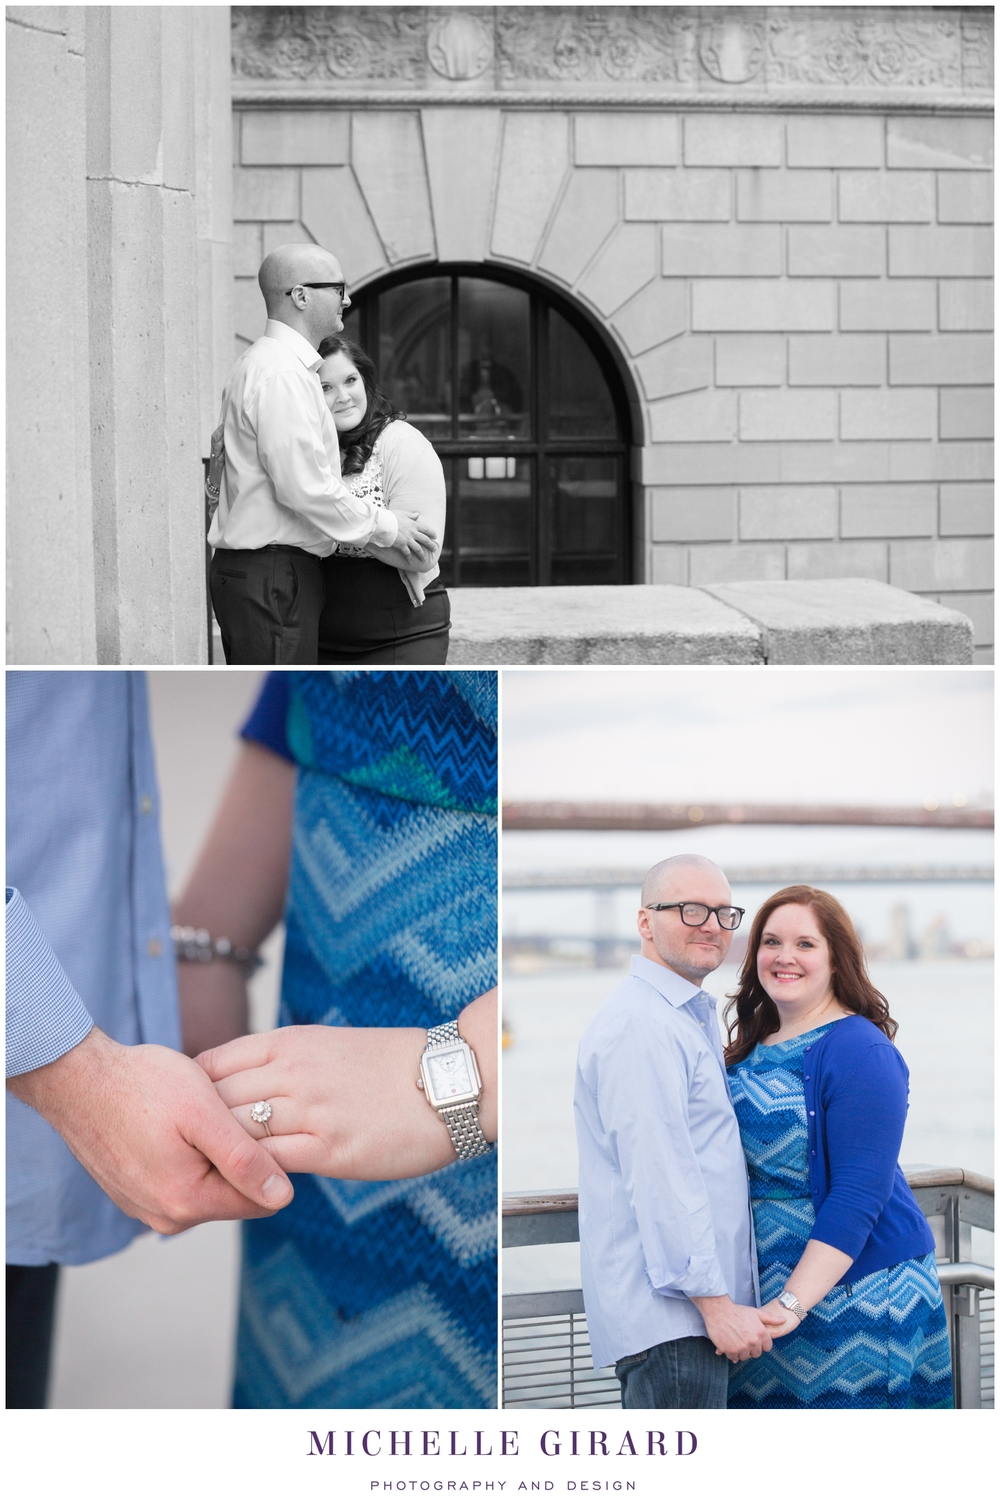 NewYorkCityEngagementSession_FinancialDistrict_MichelleGirardPhotography01.jpg